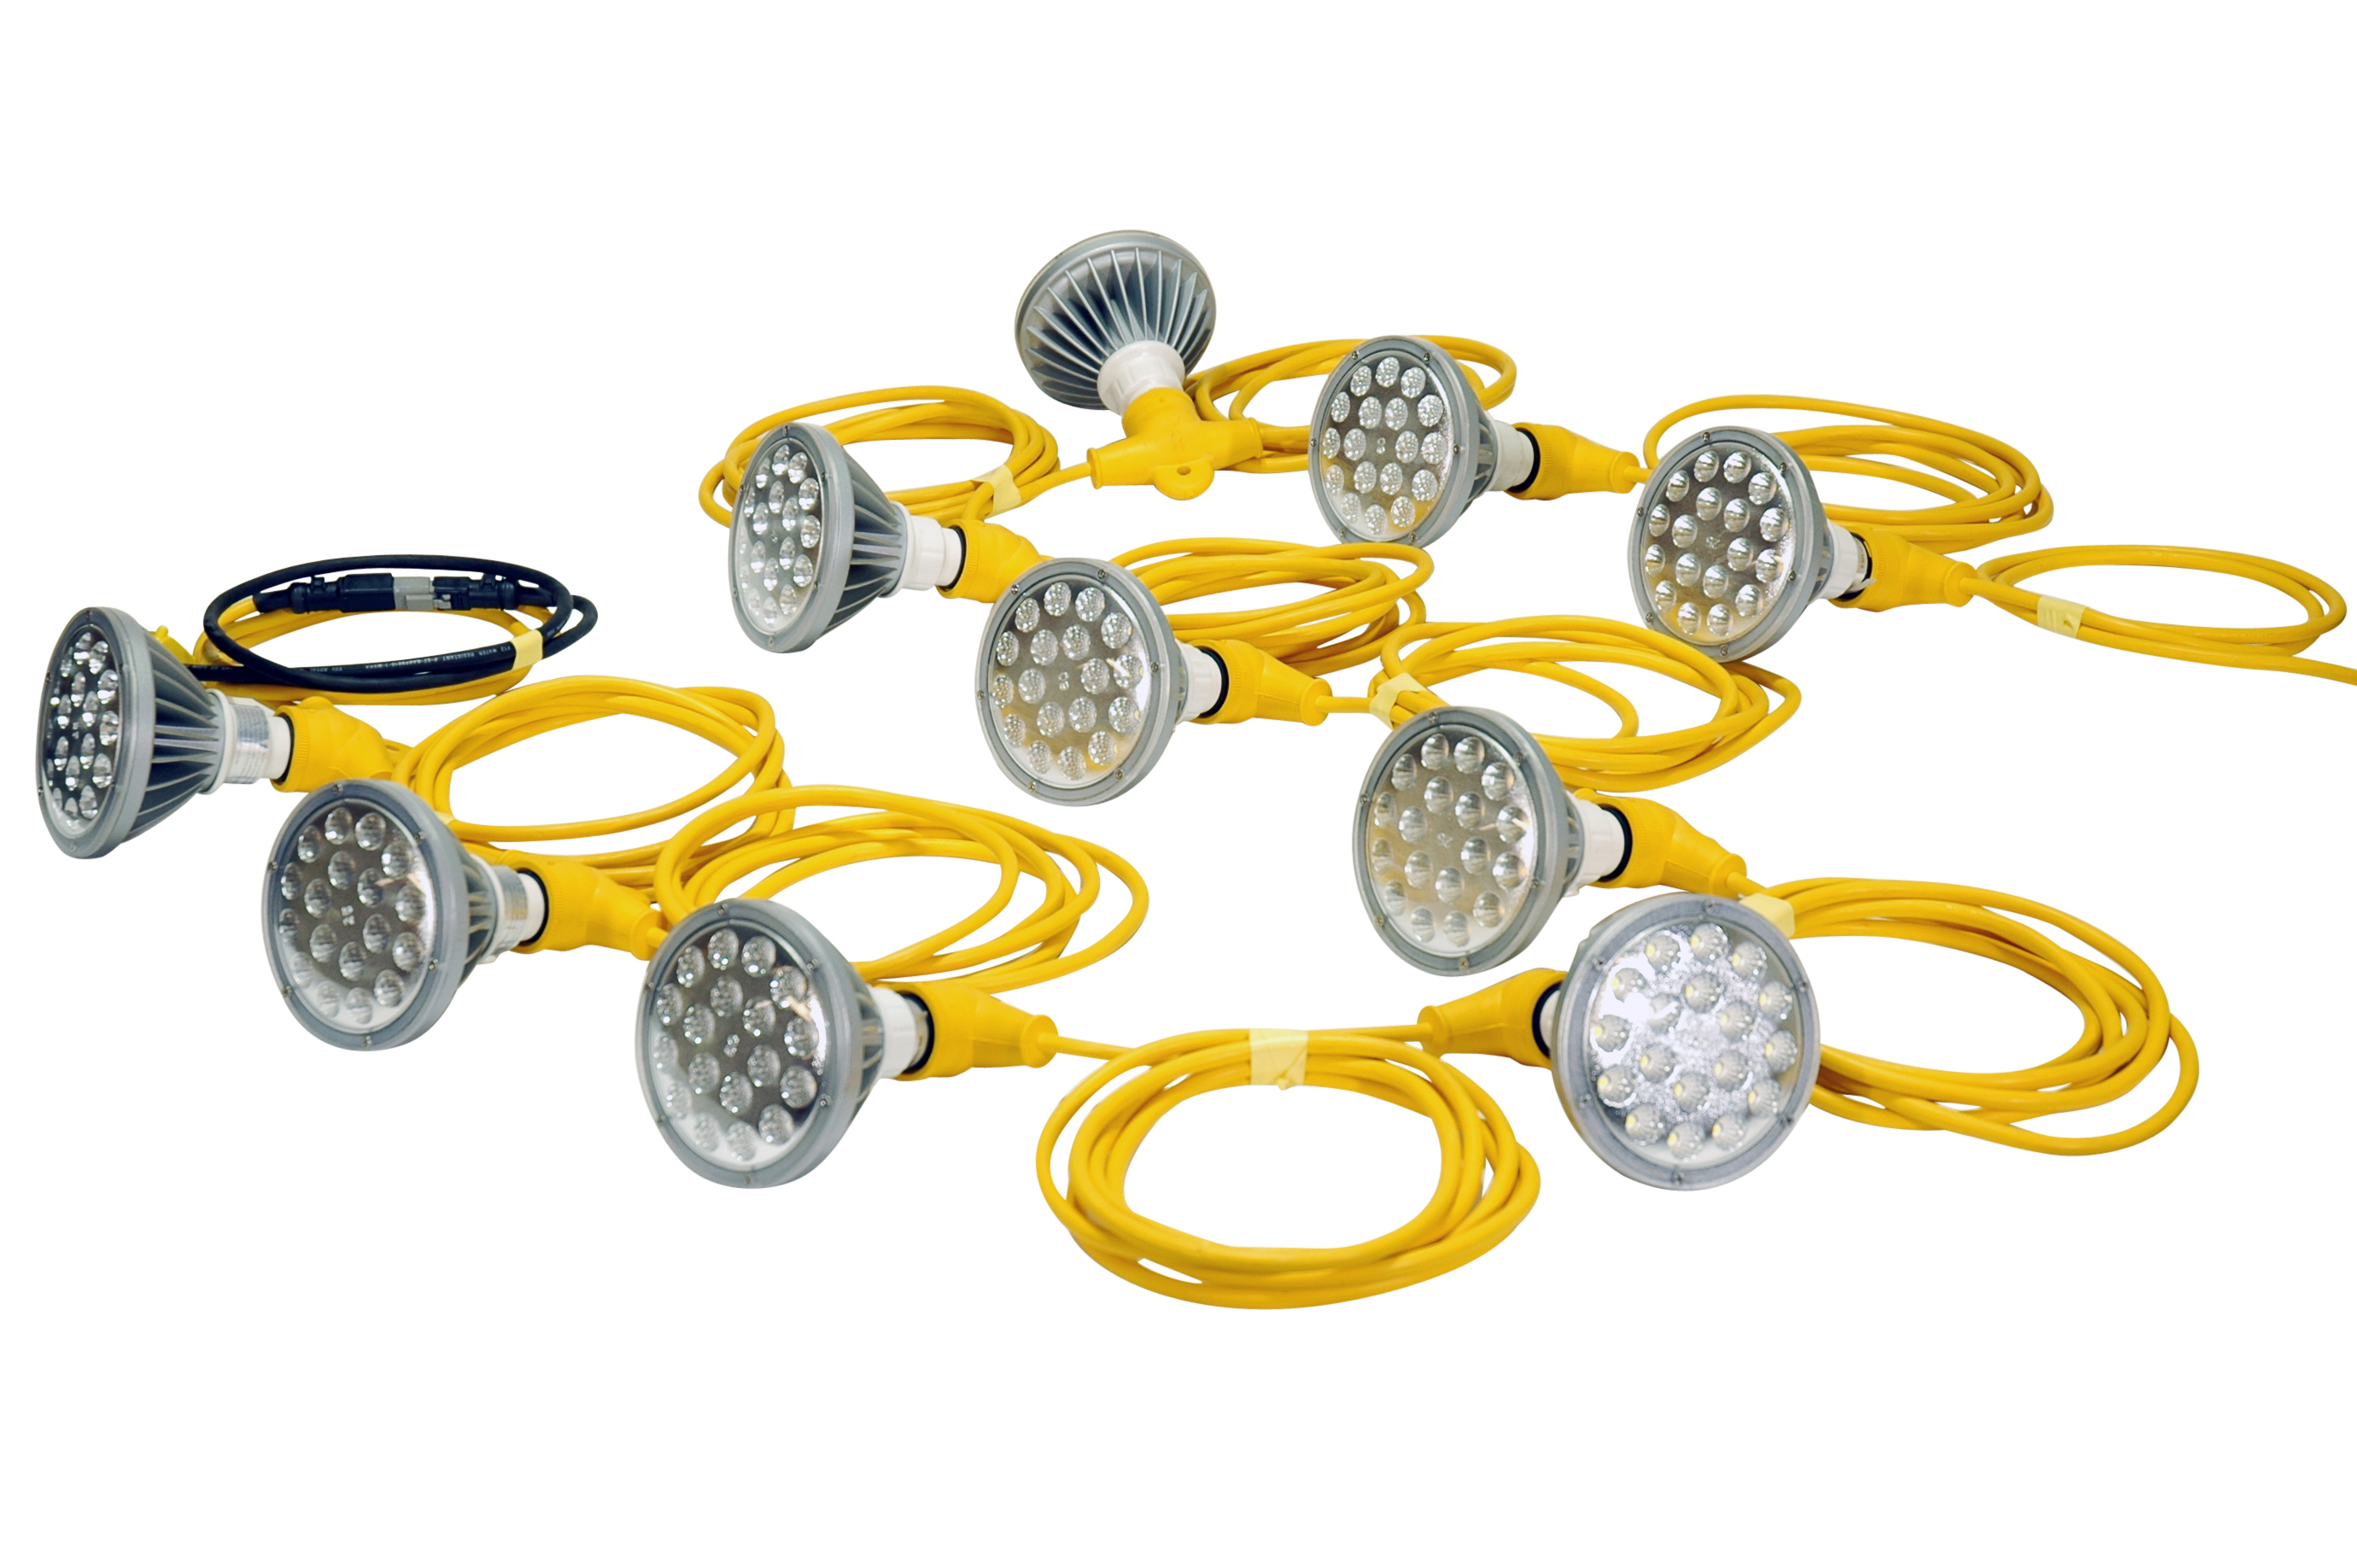 String Lights For Construction Sites : 250 Watt Temporary Construction LED String Lights Released by Larson Electronics